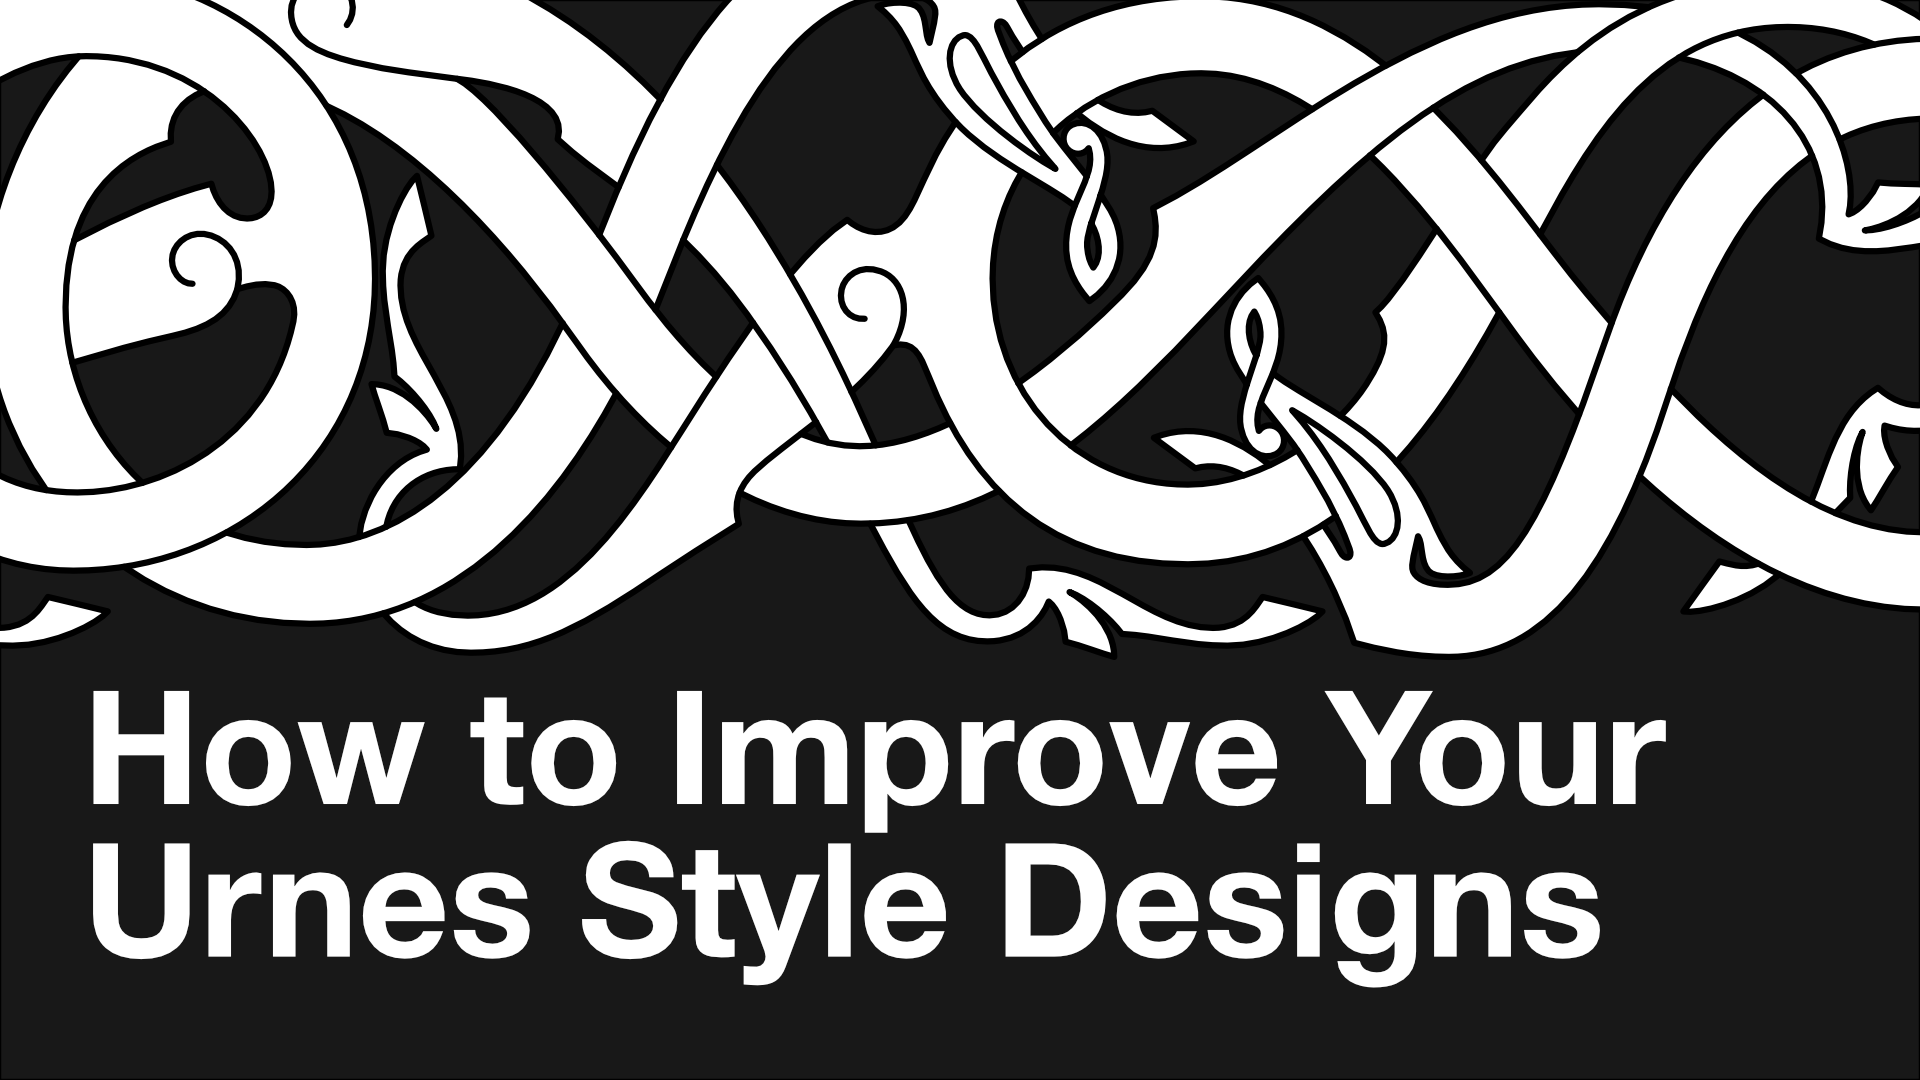 How to Improve Your Urnes Style Designs